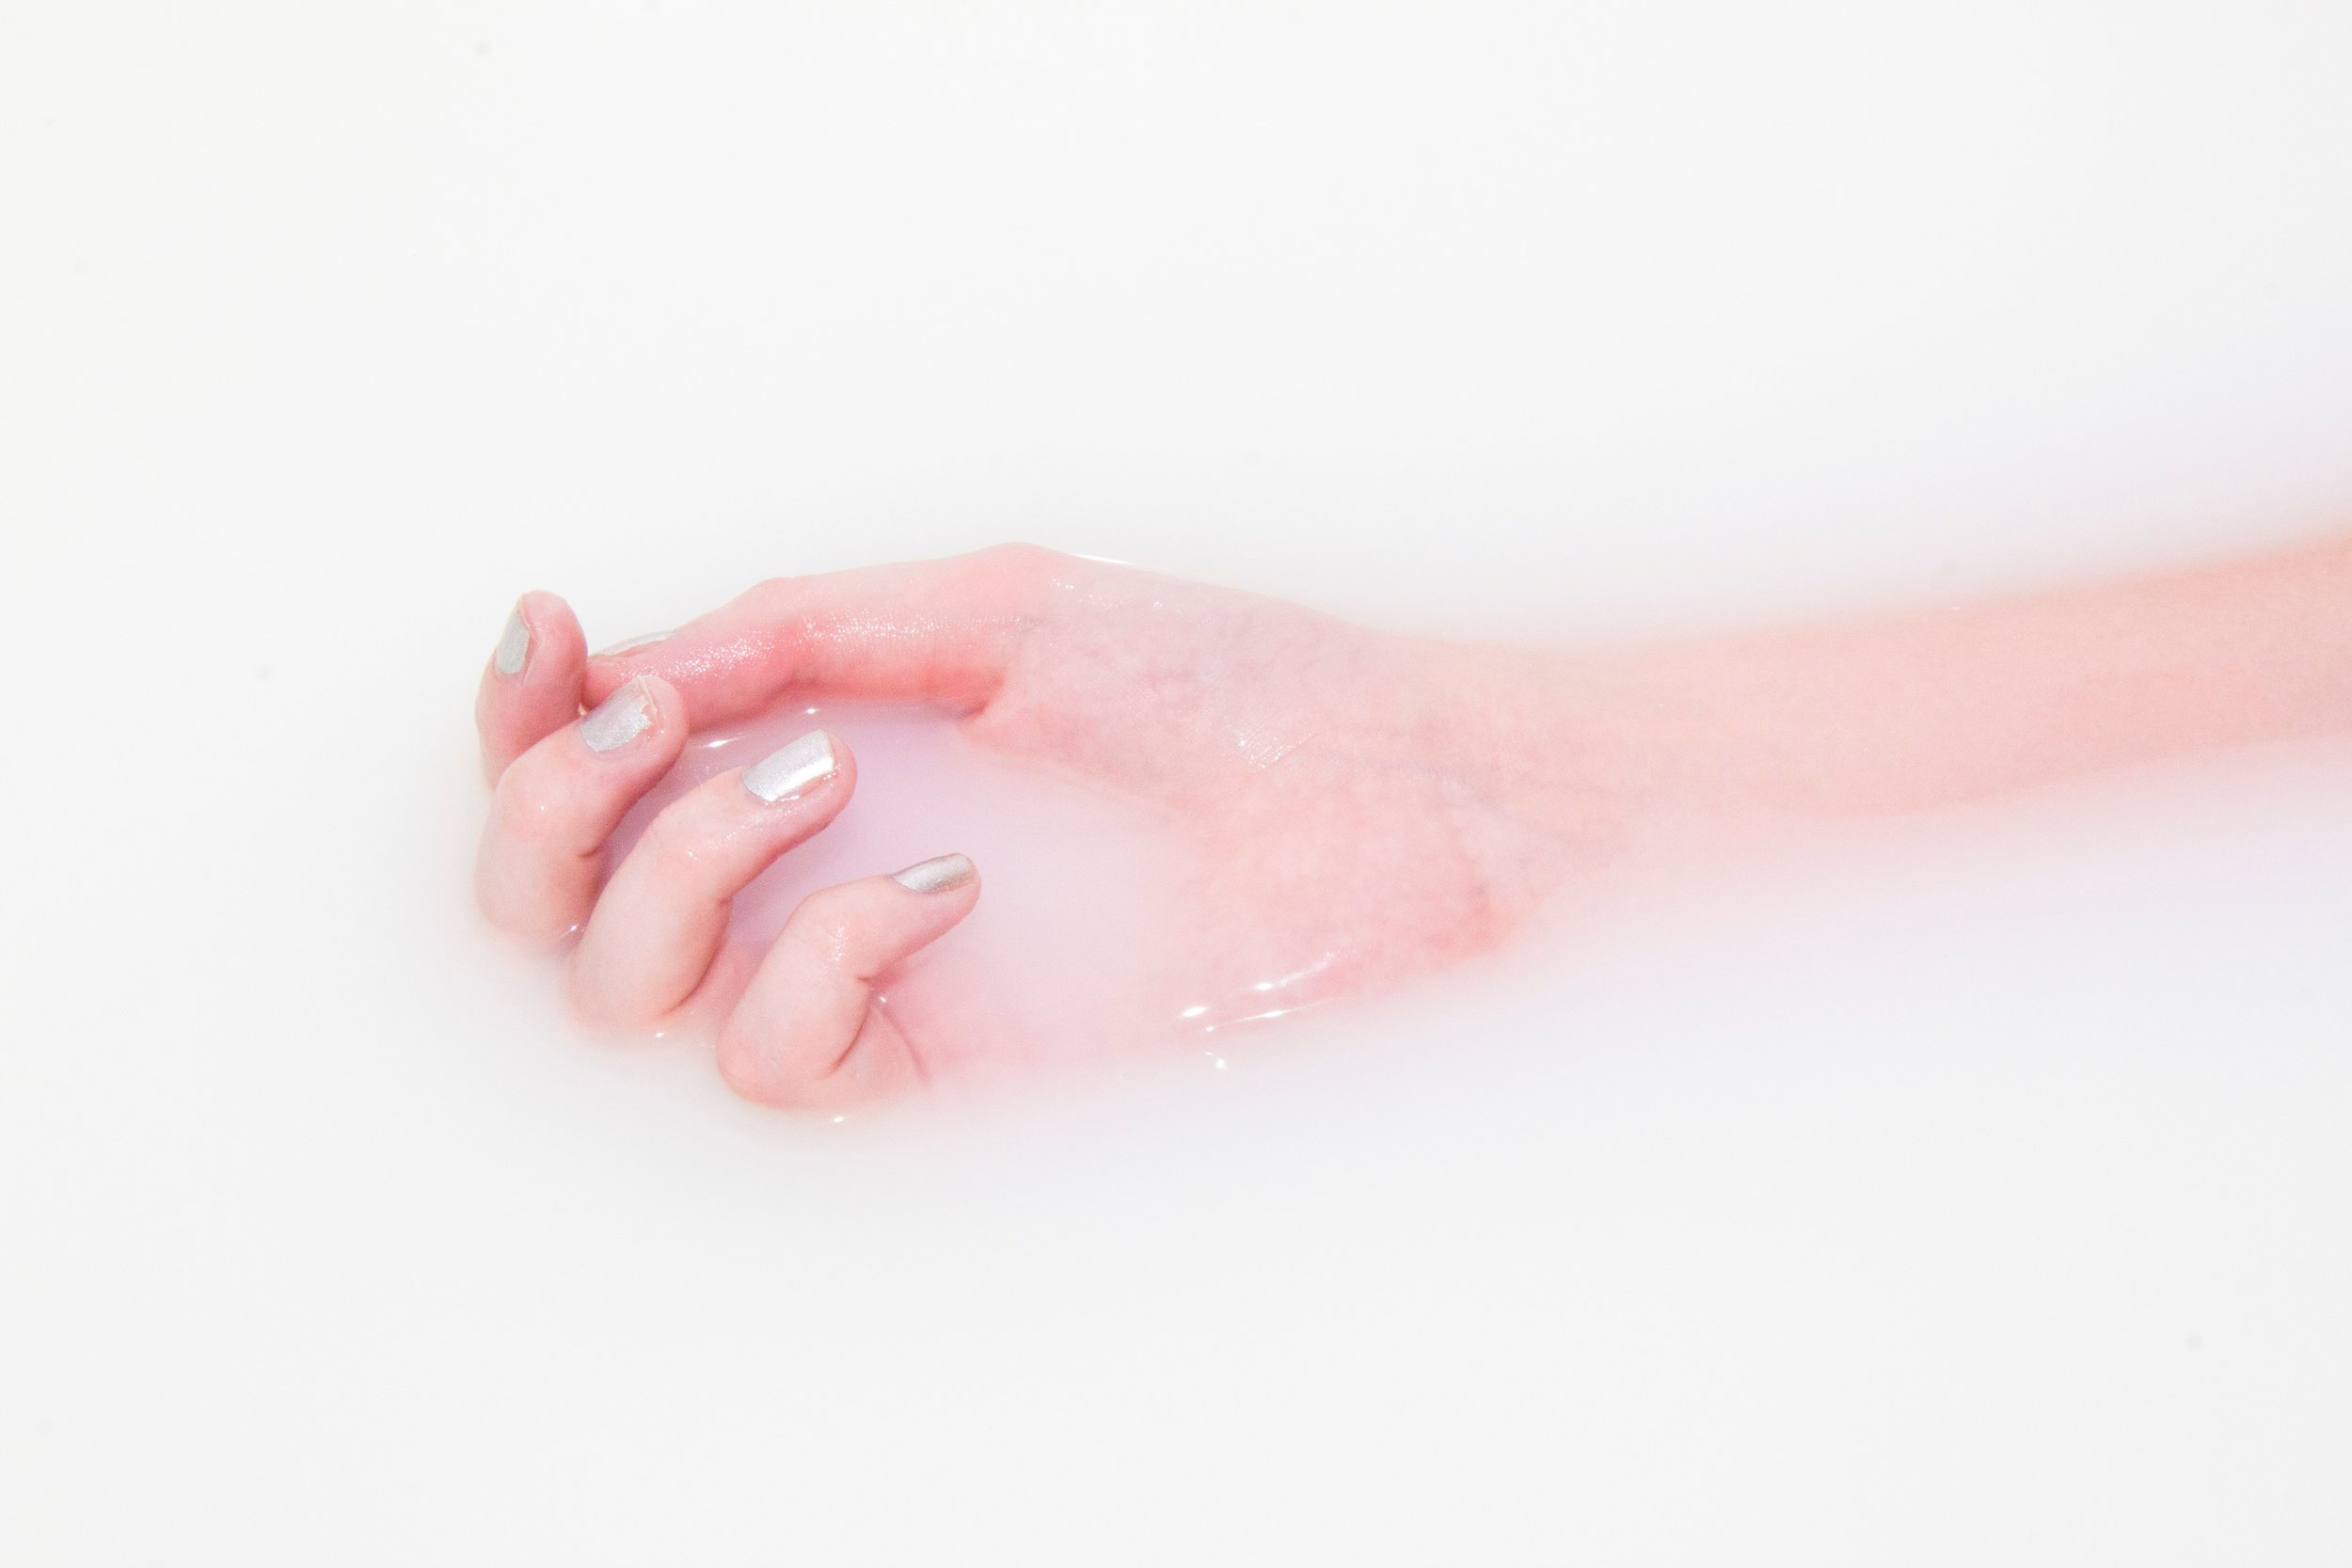 A hand with light colored polish lays in a bath of milky water.